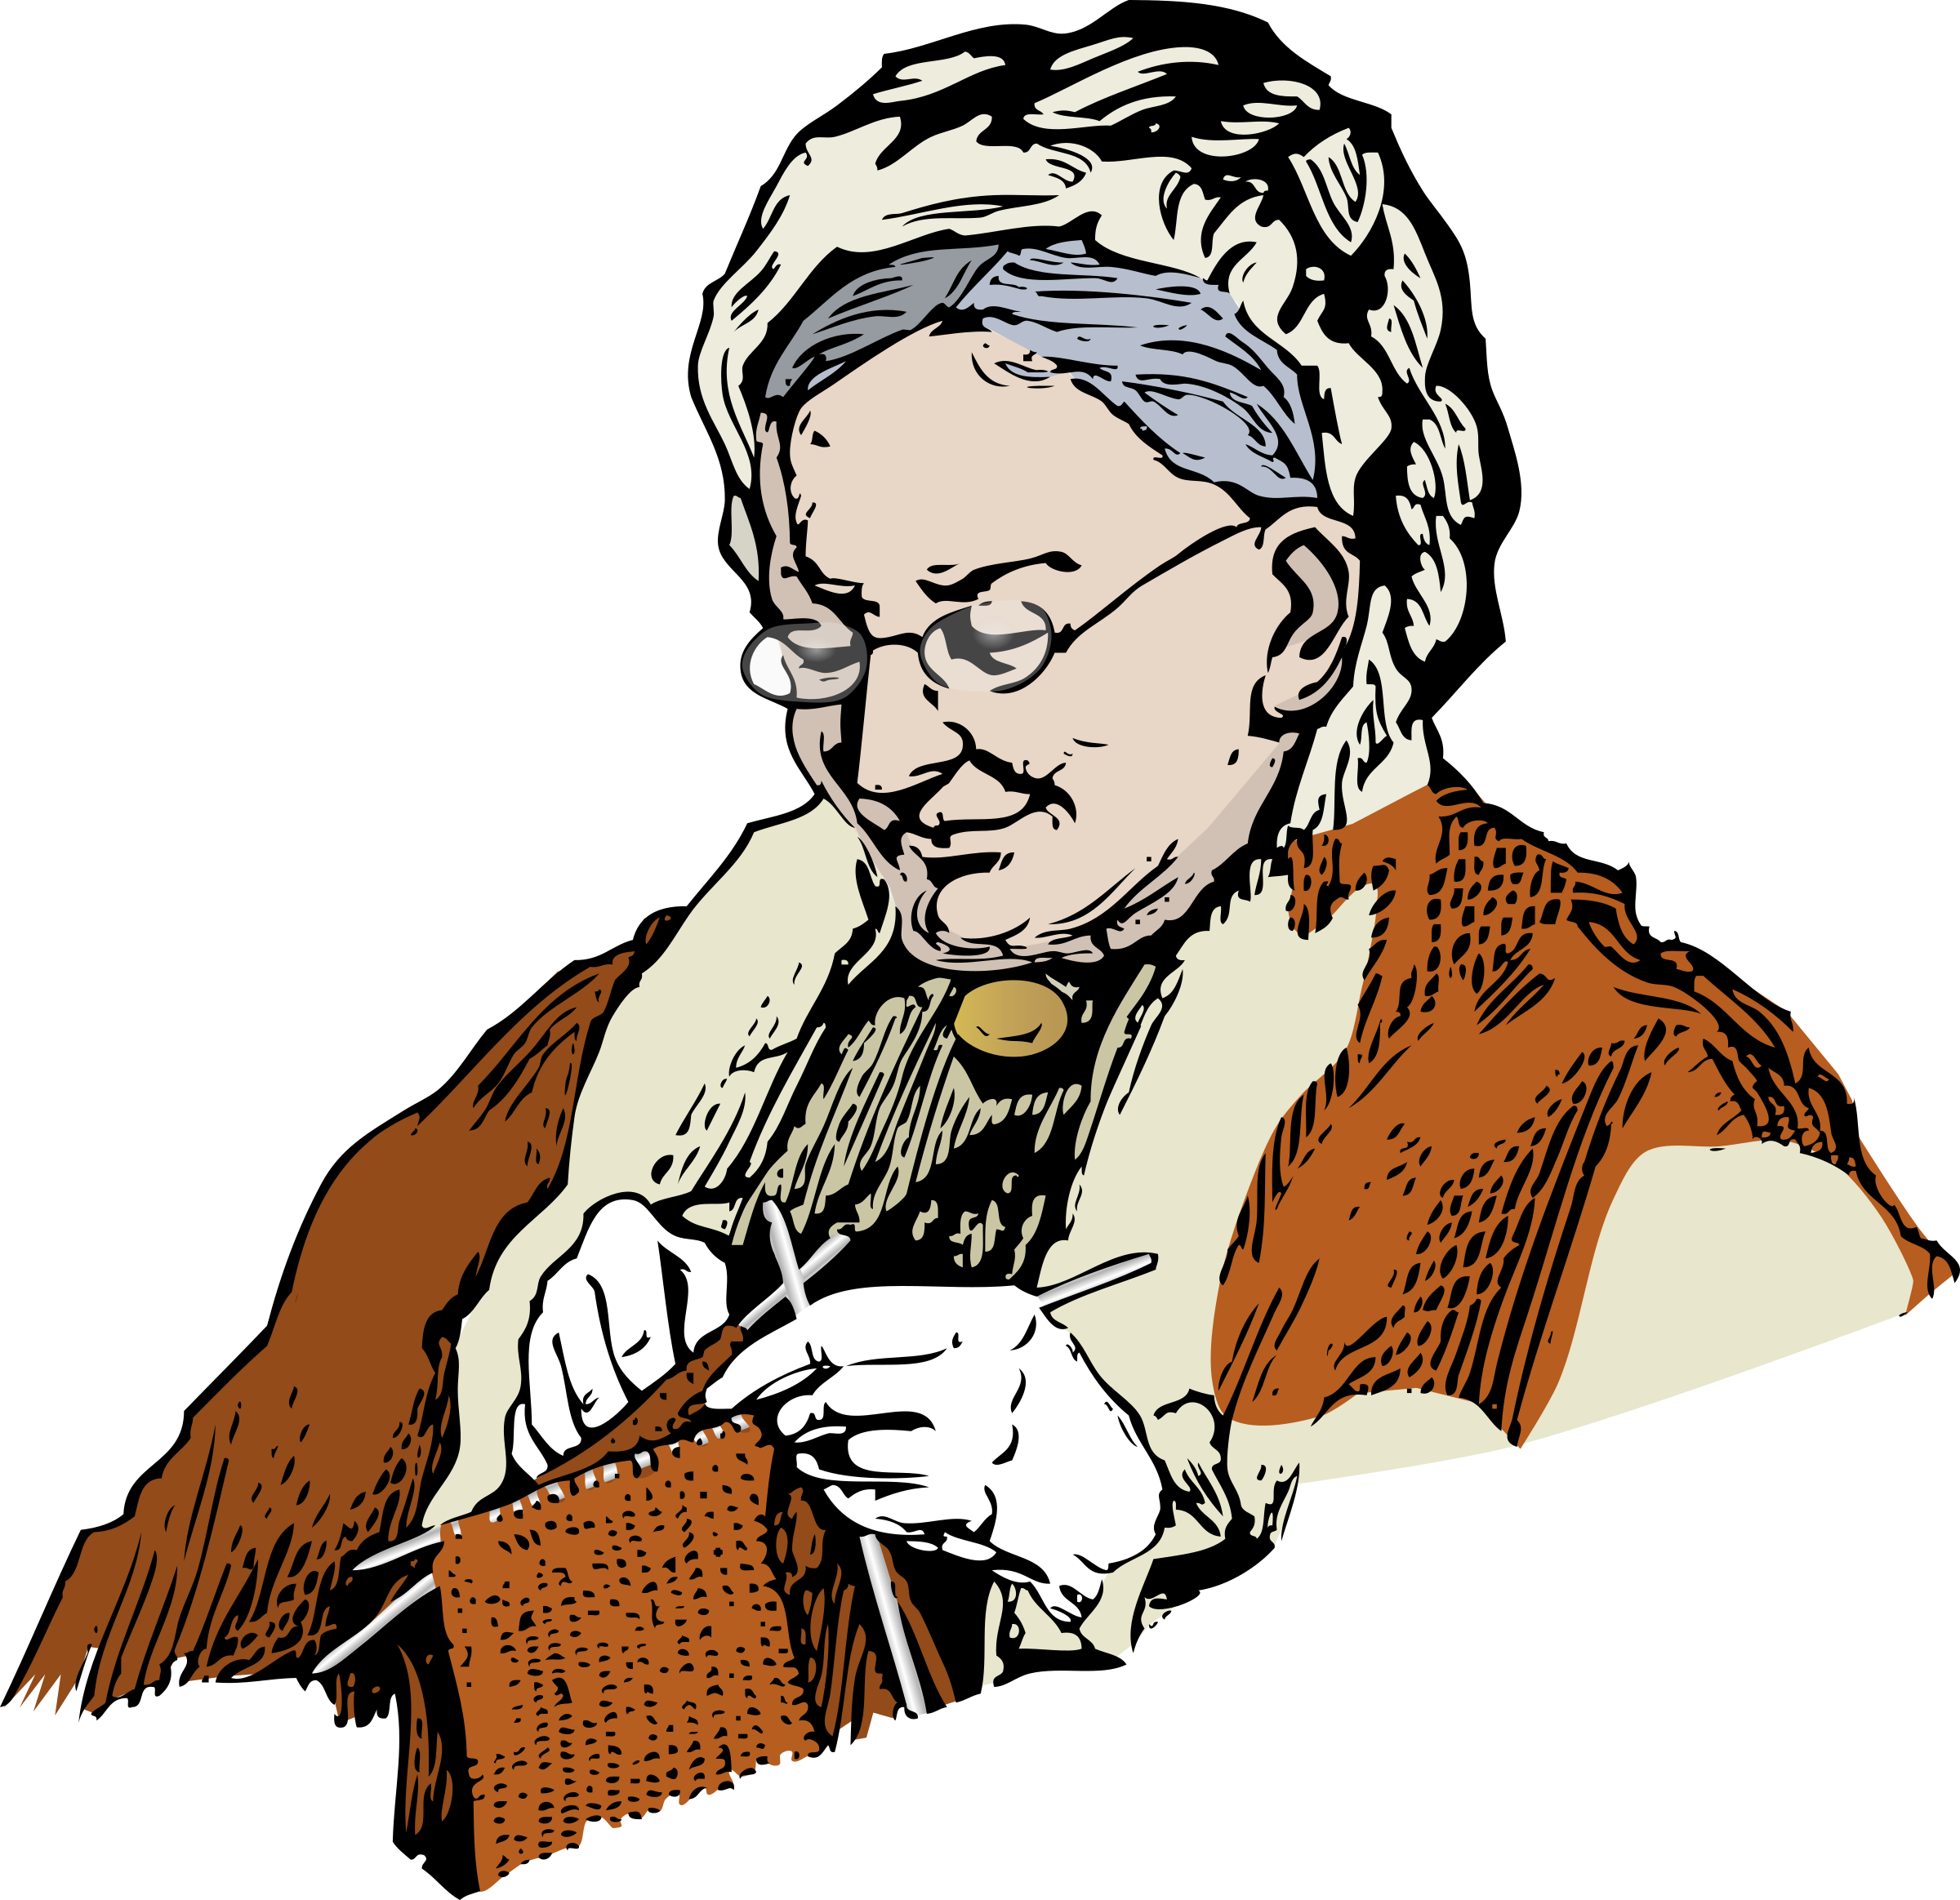 Knitting Granny by eady